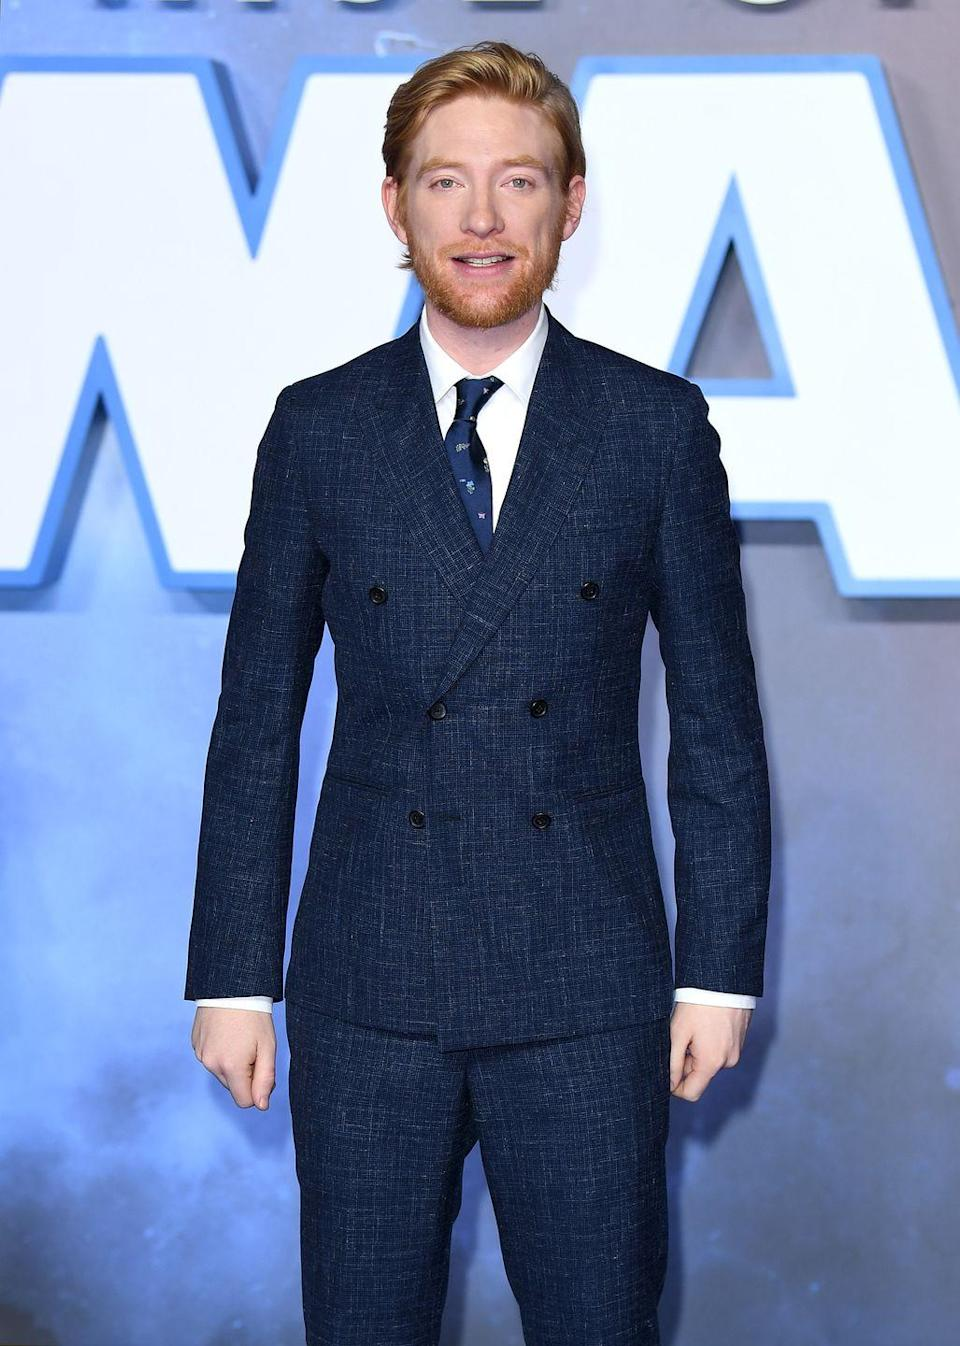 <p>...Including his oldest son Domhnall, whose most famous for roles in popular shows and films like <em>Ex Machina, Run,</em> and the final <em>Harry Potter</em> films. </p>